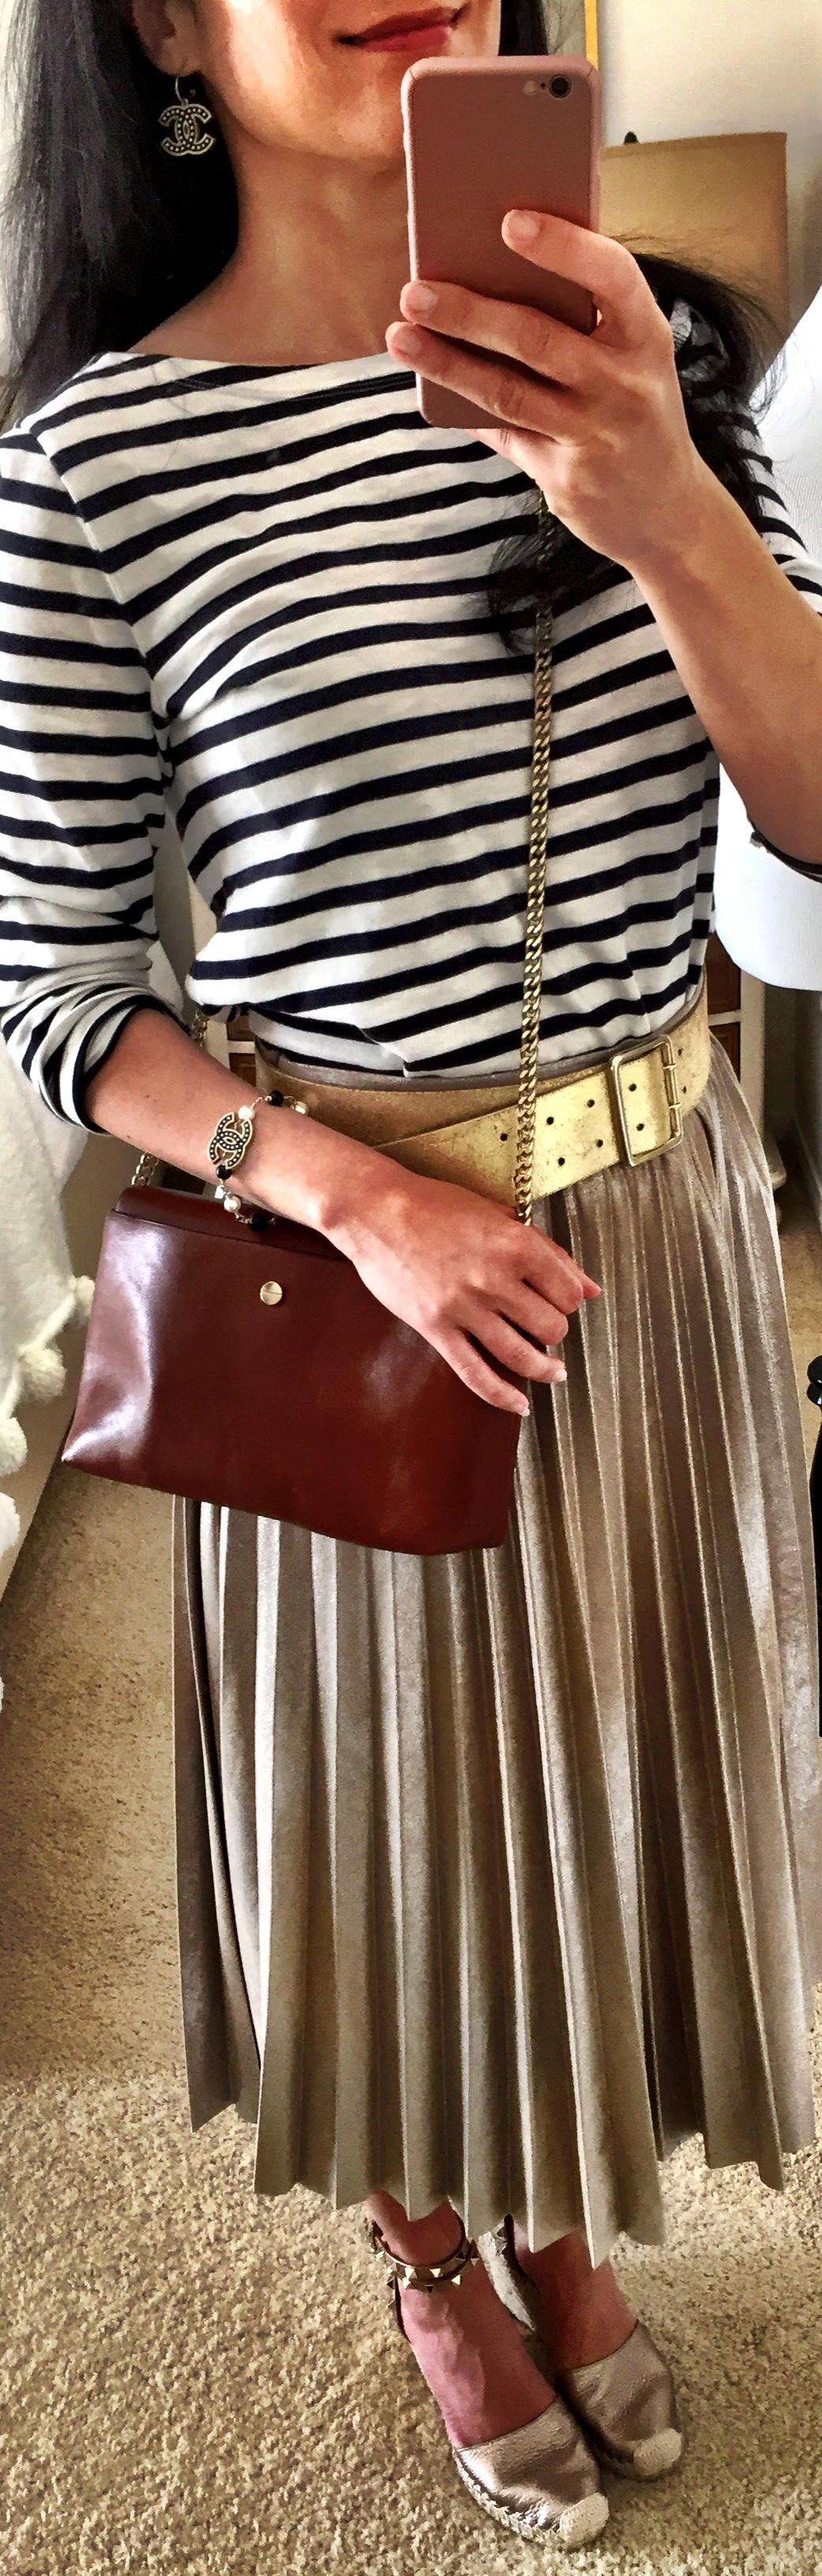 June 21, Midi metallic skirt with striped tee J.Crew